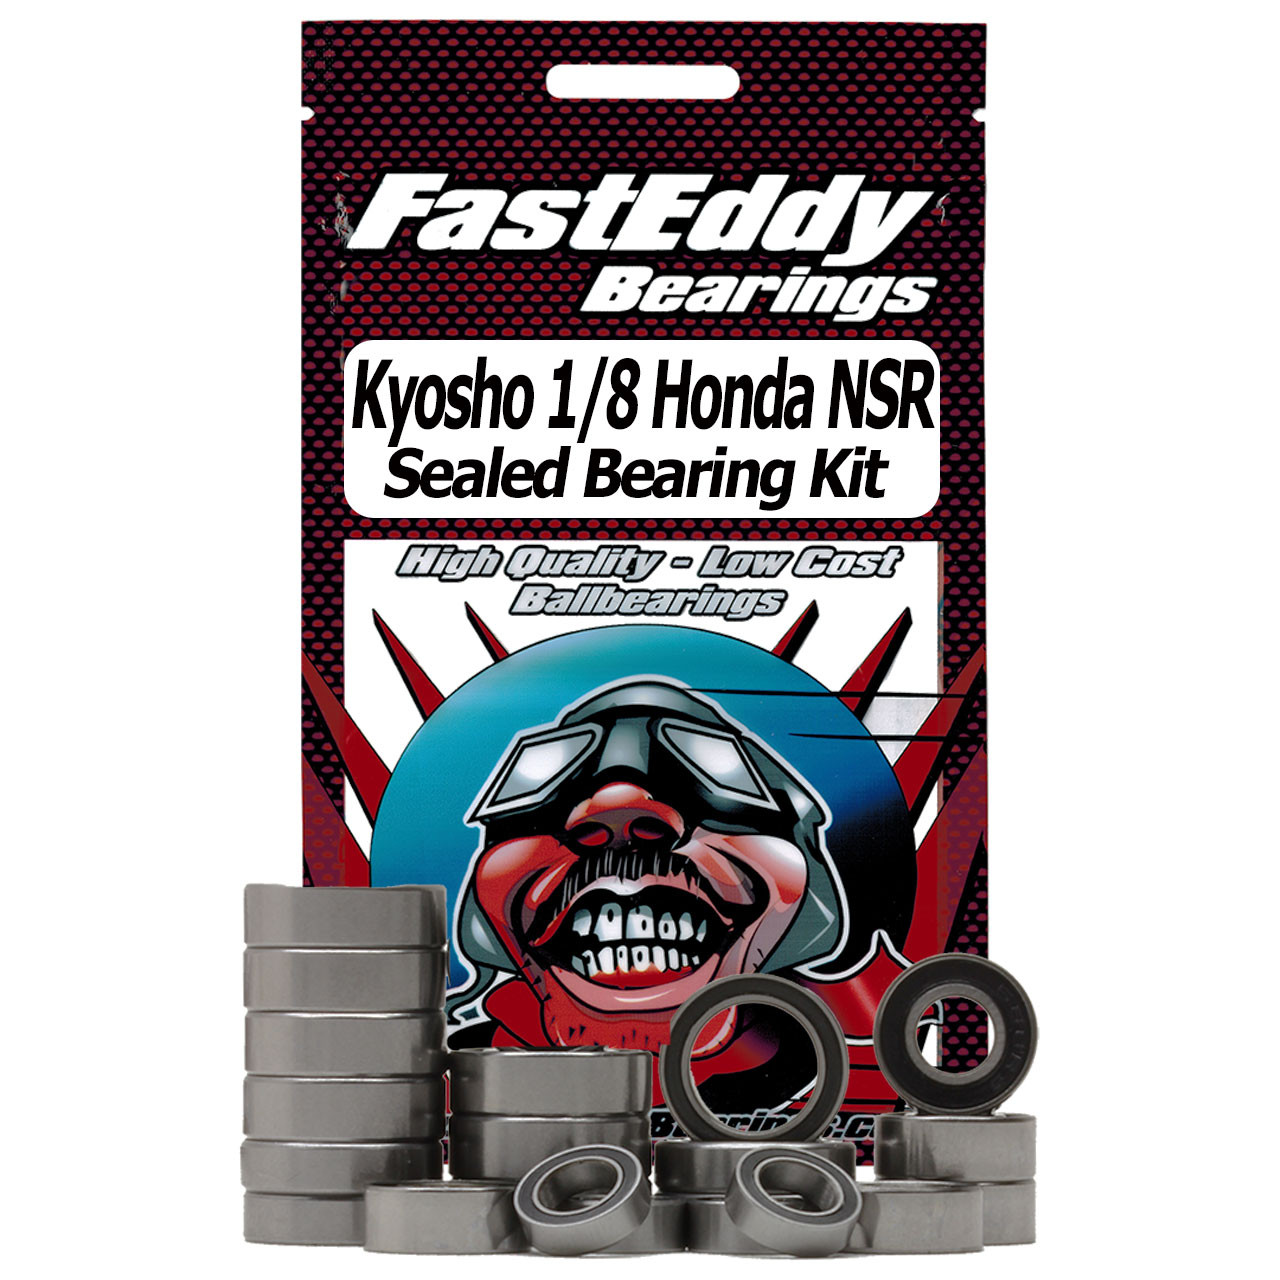 Kyosho 1/8th Honda NSR ARR Sealed Bearing Kit